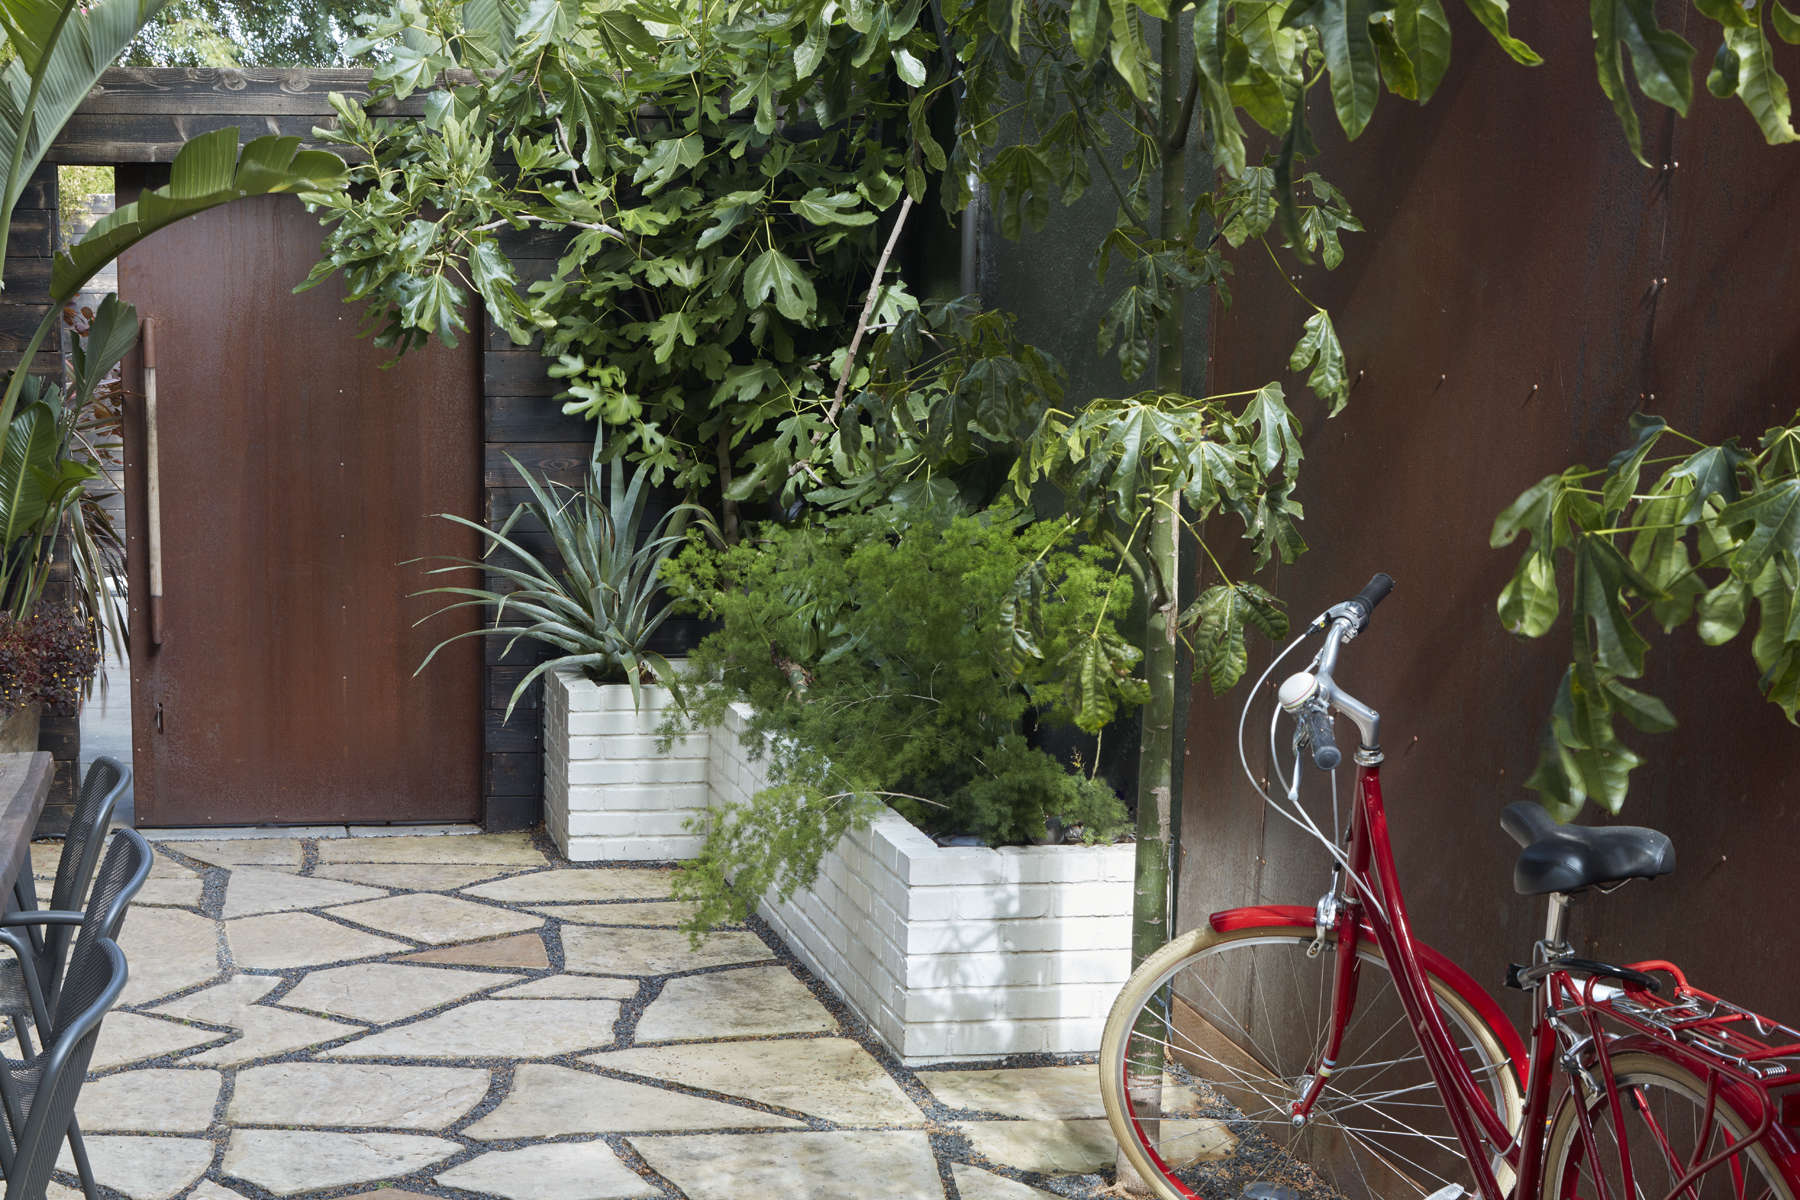 Raised containers add lushness to this garden designed by Daniel Nolan. Photo by Caitlin Atkinson.